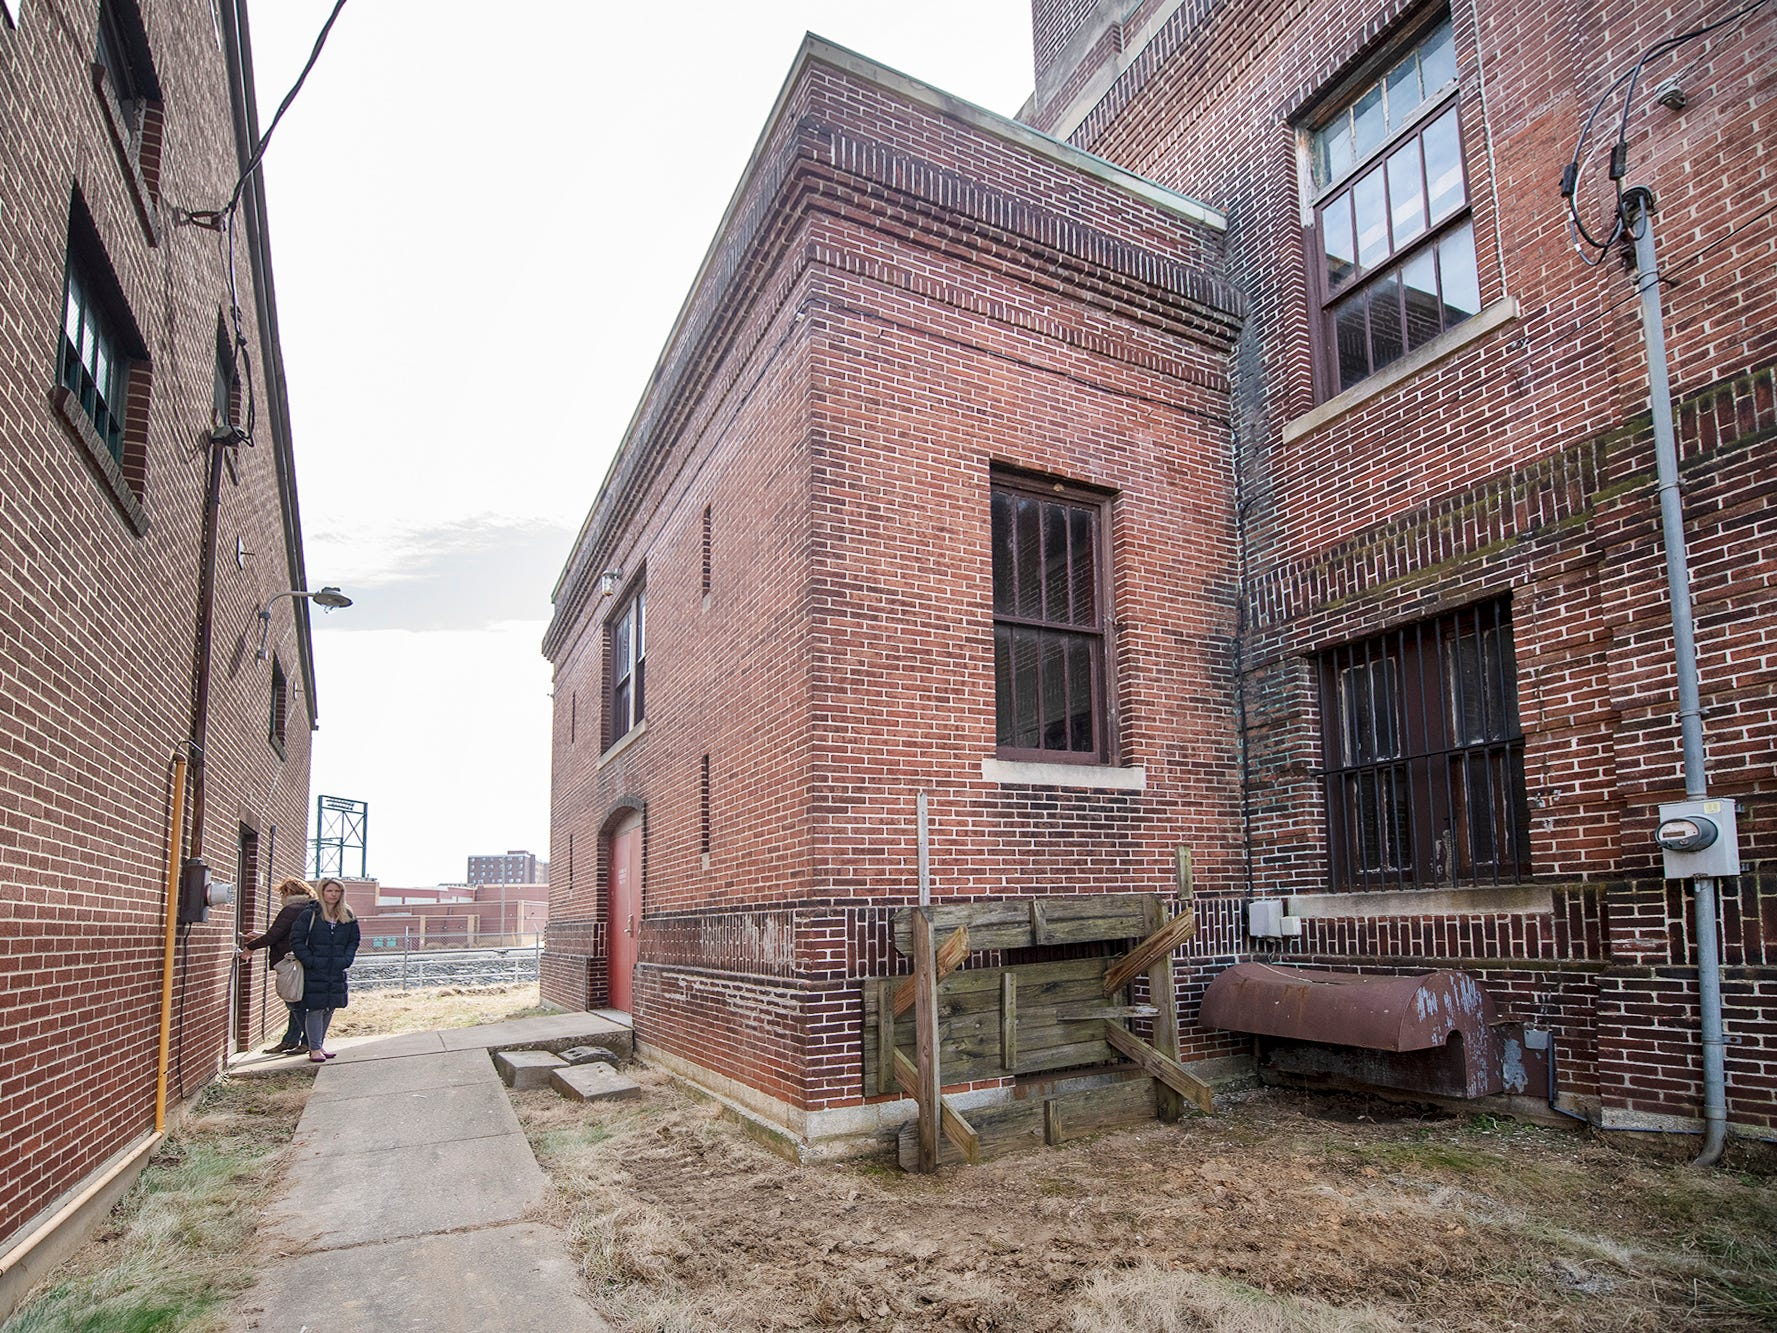 A space between the buildings will be a new enclosed entryway. The York Armory, a brick fortress built in 1913 once used by the Pa. National Guard, will soon be transformed into Keystone Kidspace, an educational experience for families. It's expected to open in 2020.